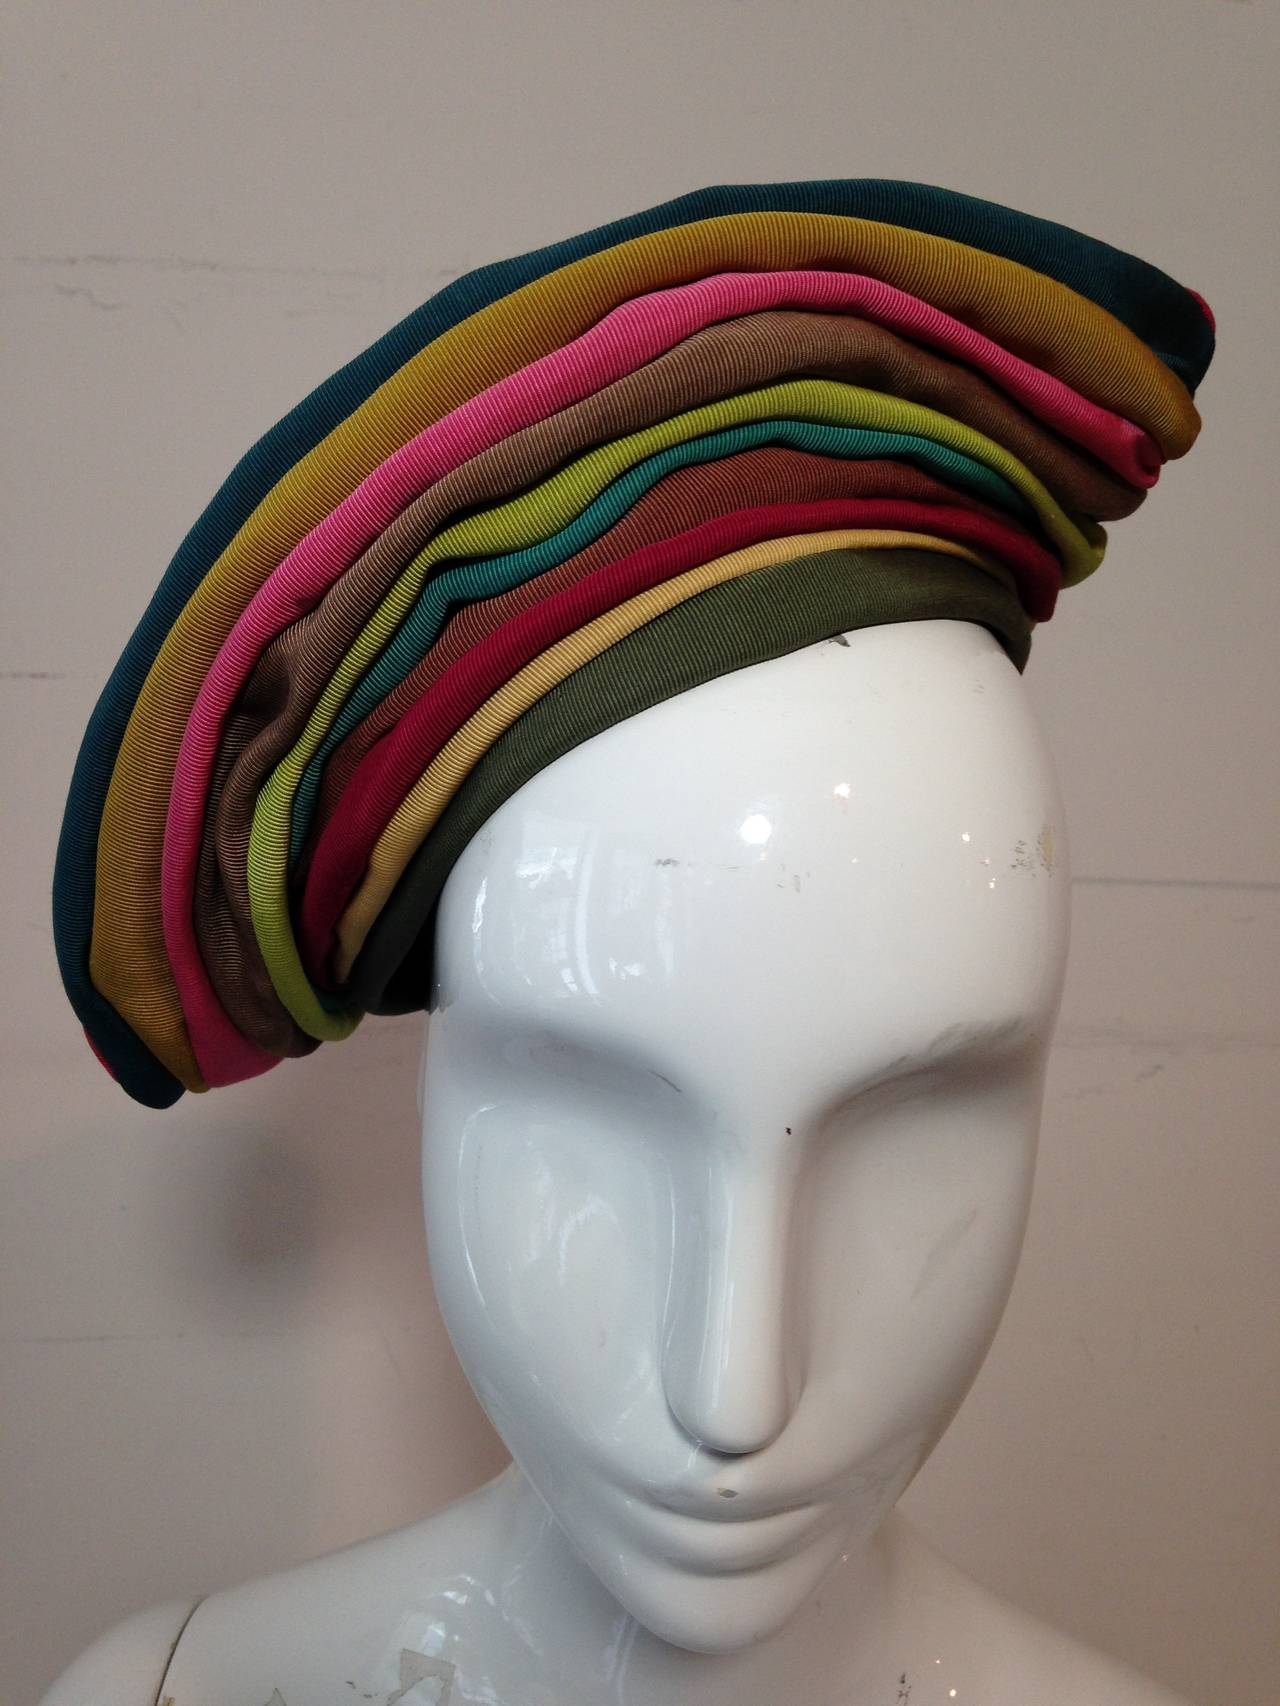 A fabulous 1940s Irina Roublon hat:  Multi-color grosgrain ribbons are stitched together in stripes at a jaunty tilt in this stunning hat lined in silk tulle. This hat is meant to perch on head and not pulled down all around.  Secure with pins or